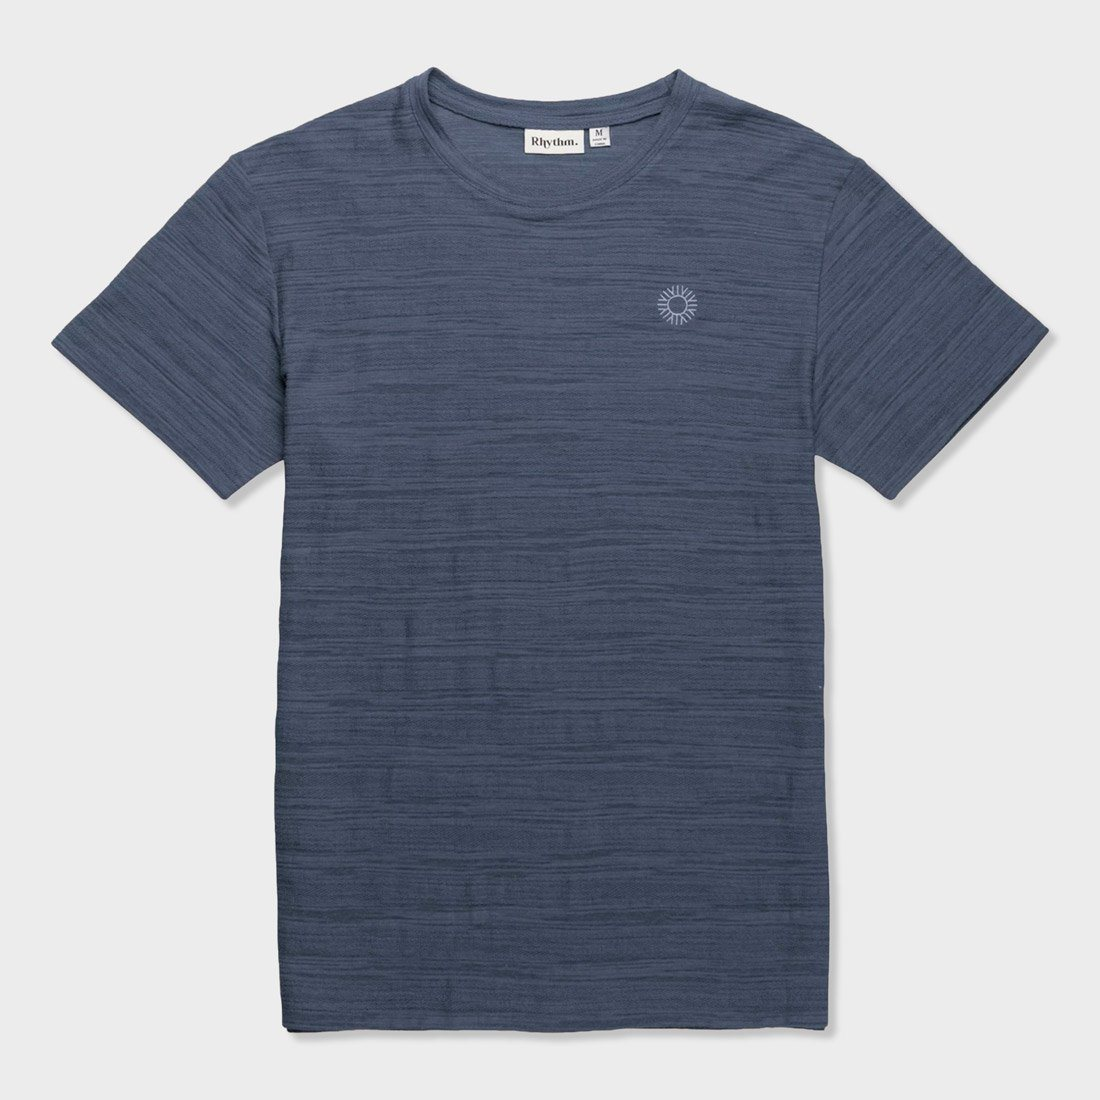 Rhythm Bangalow Textured T-Shirt Stone Blue